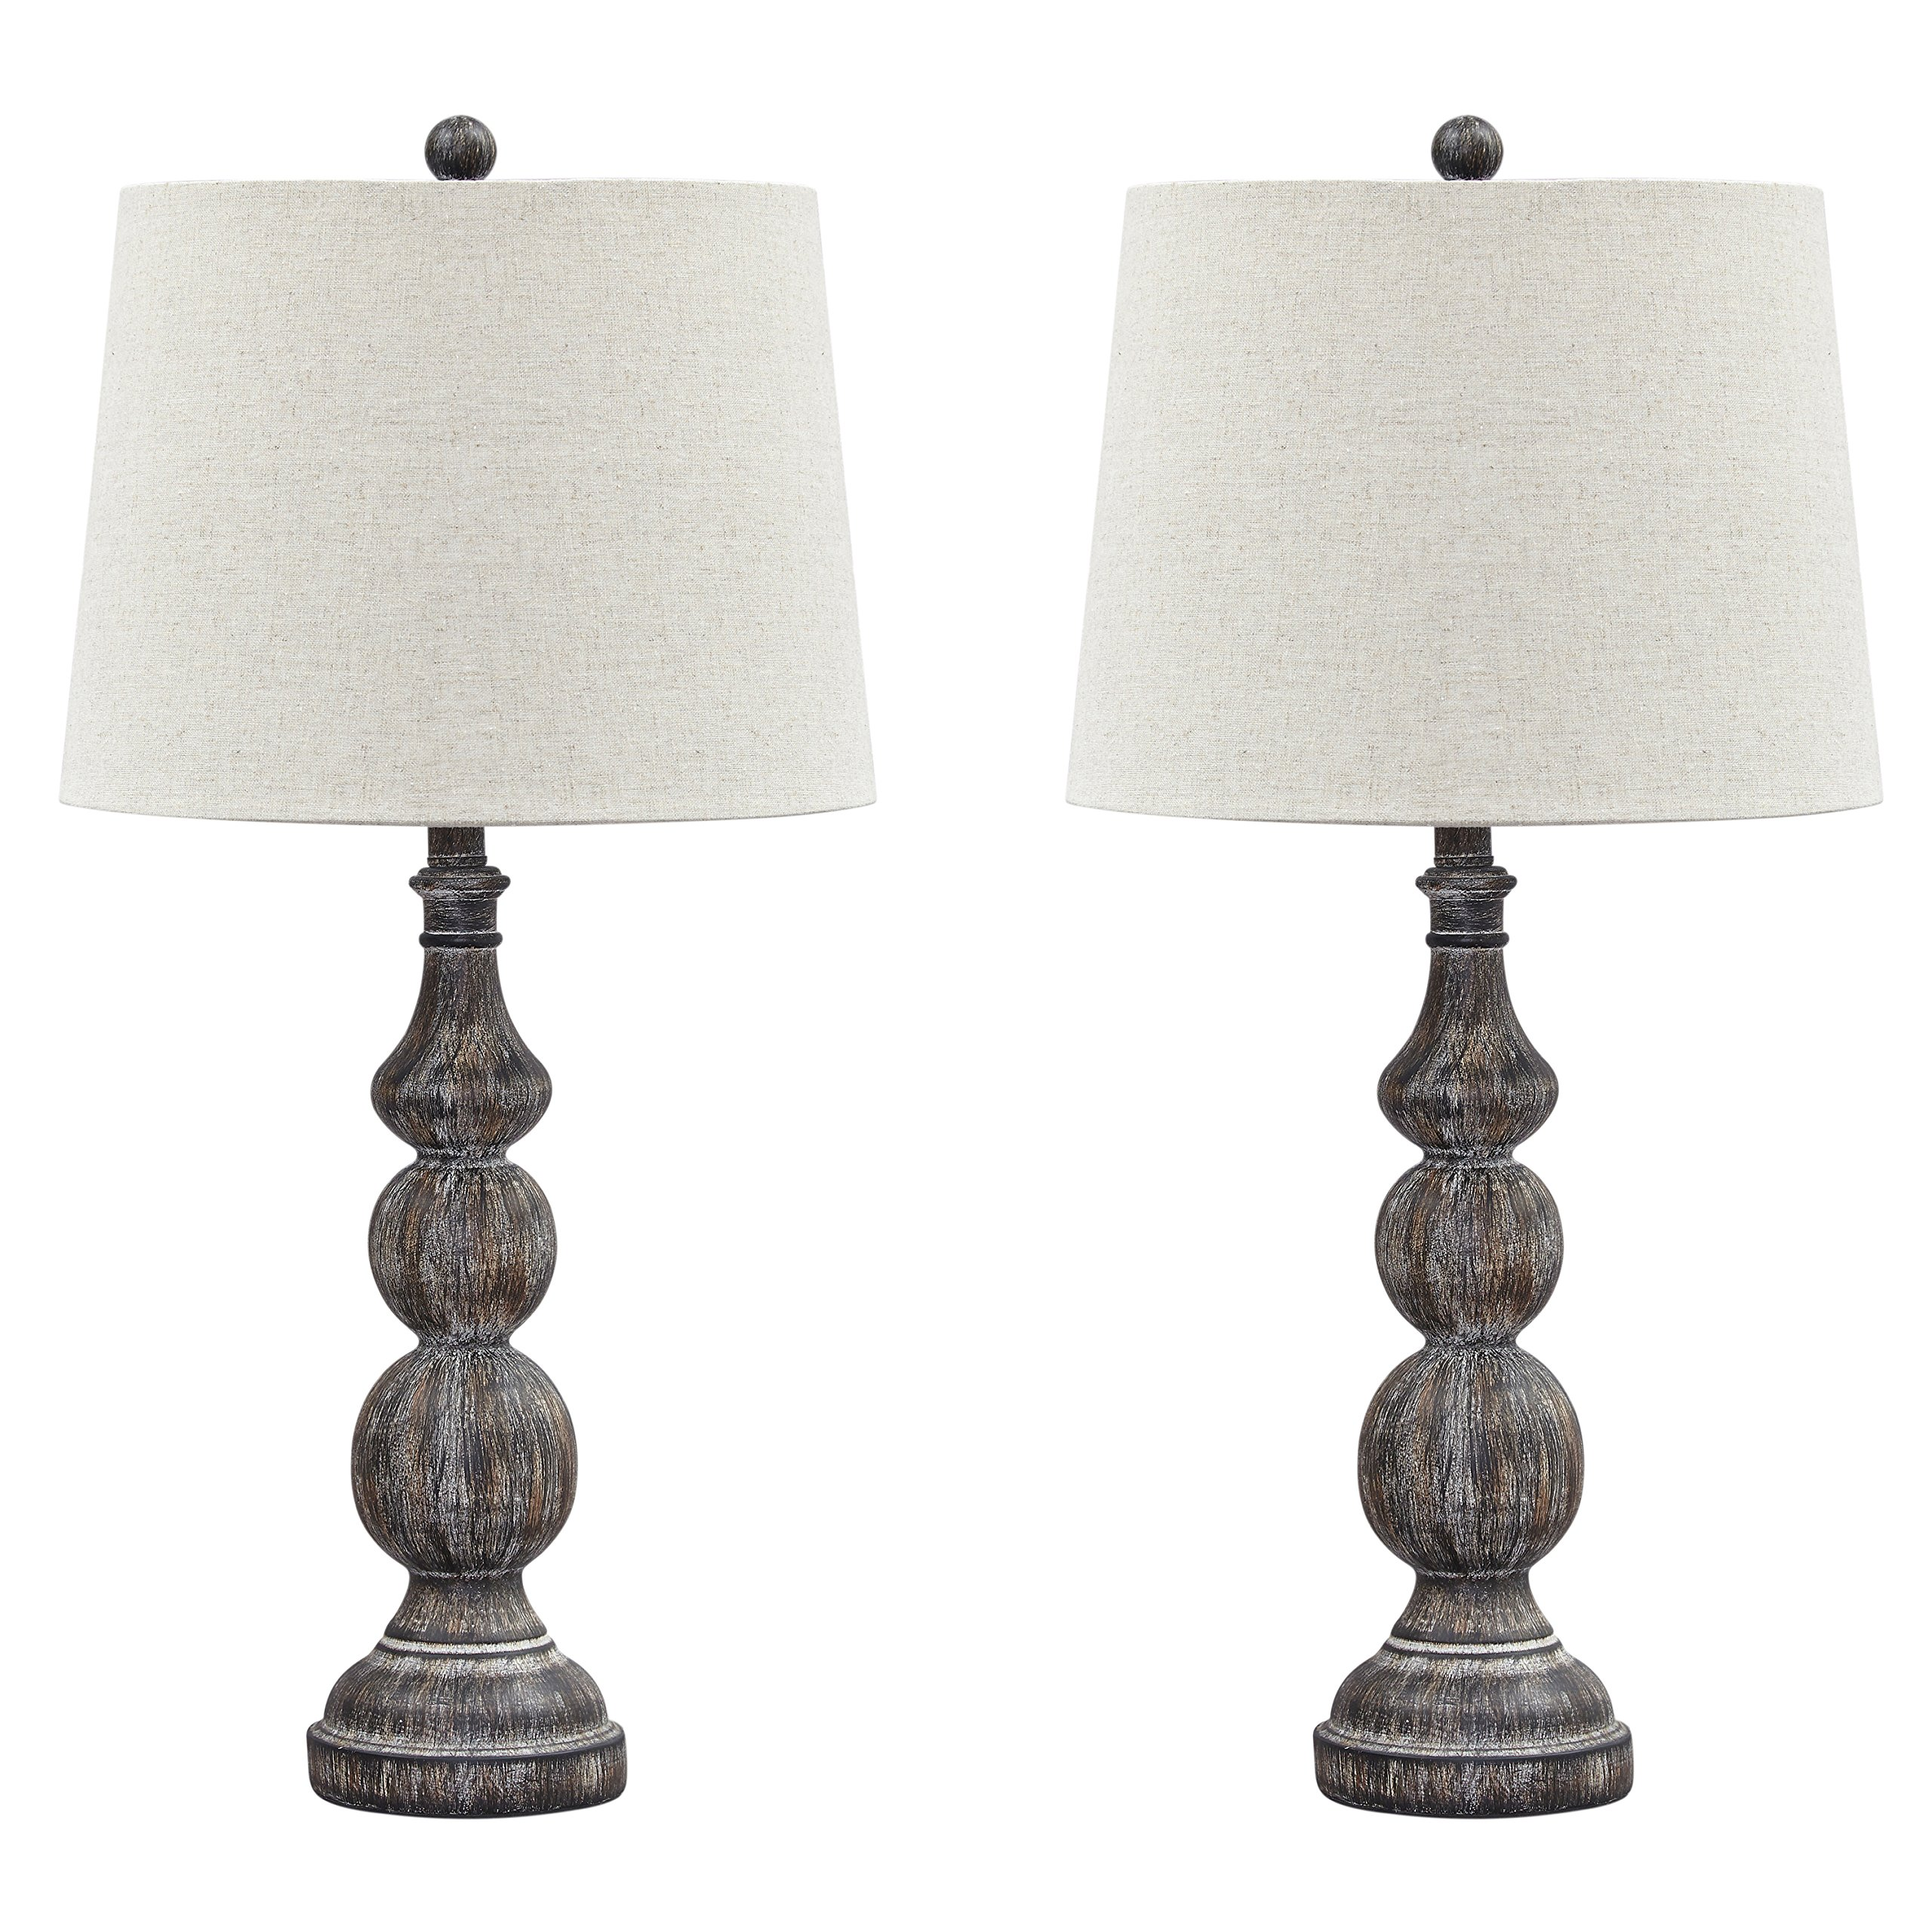 Ashley Furniture Signature Design - Mair Poly Table Lamps - Set of 2 - Timeworn Finish - Antique Black by Signature Design by Ashley